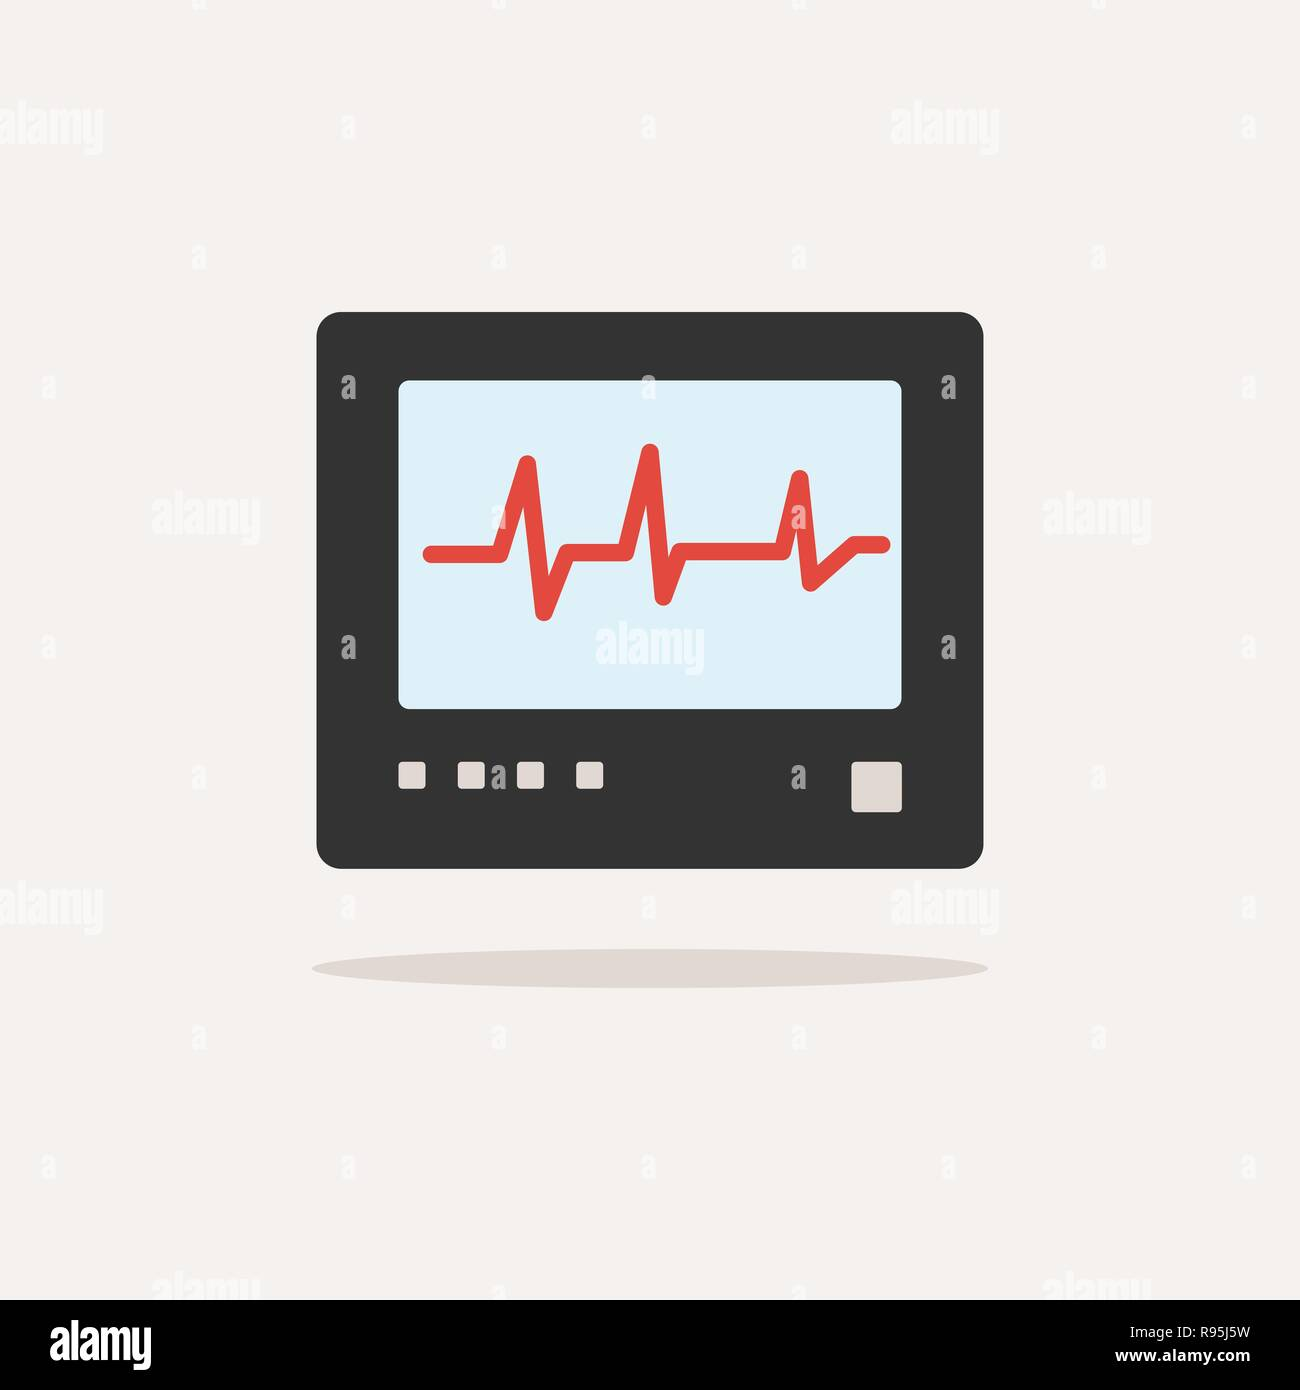 Heart Rate Monitor Stock Photos & Heart Rate Monitor Stock Images